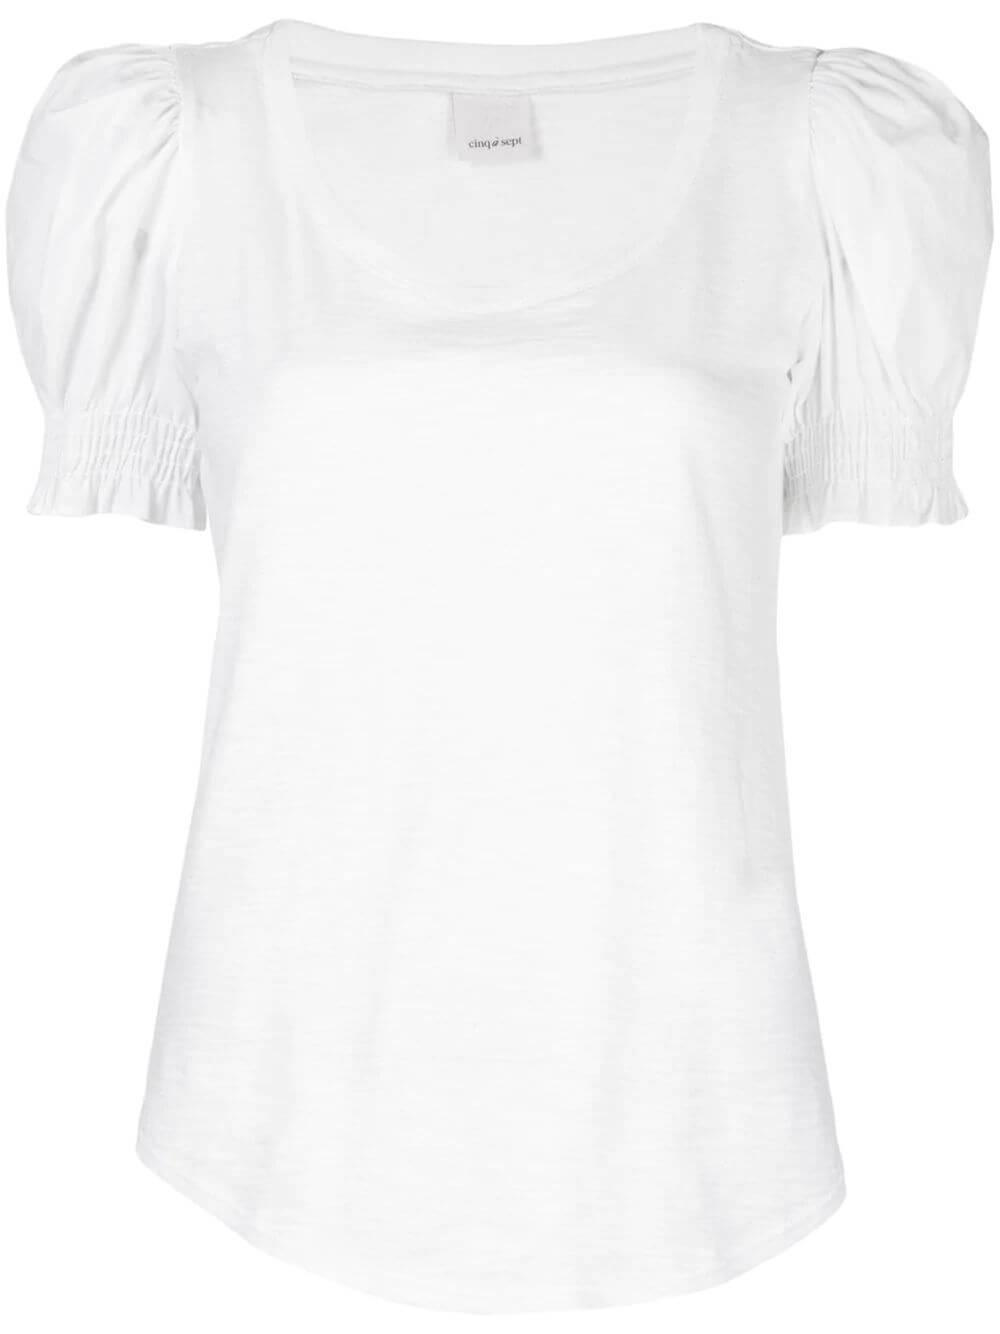 Valencia Scoop Neck Shortsleeve Tee